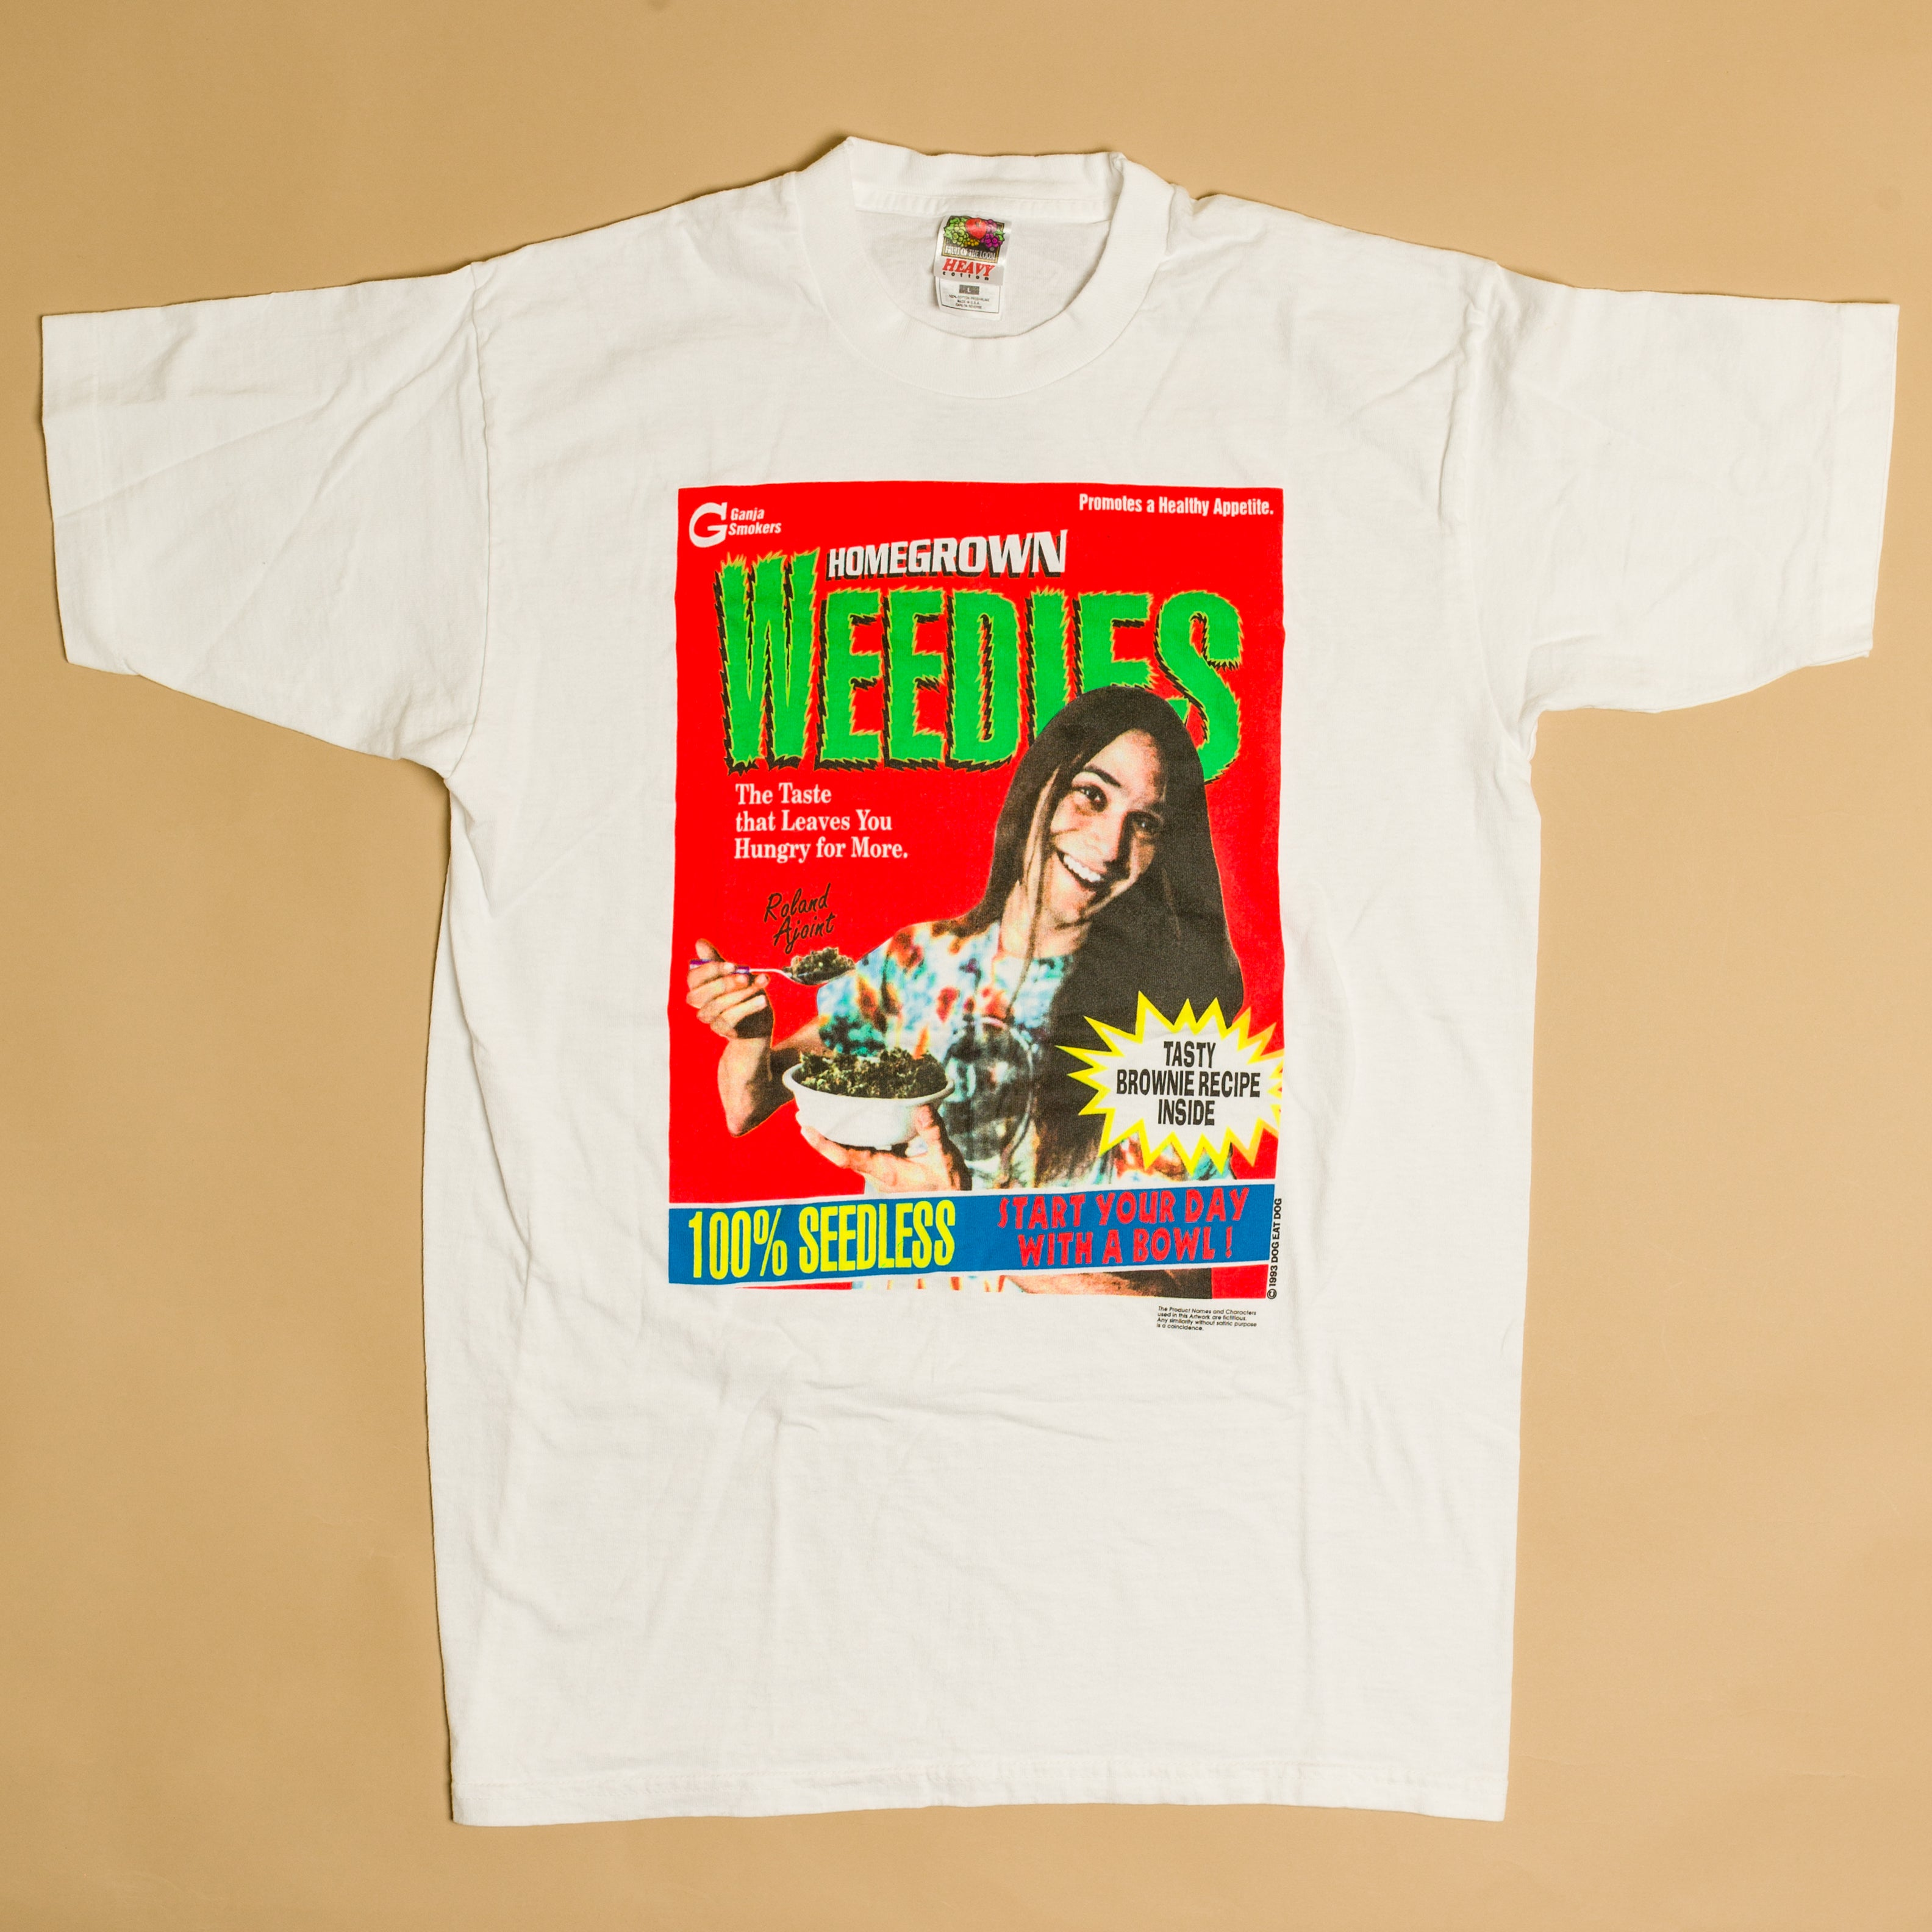 Vintage 1993 Home Grown Weedies T-Shirt